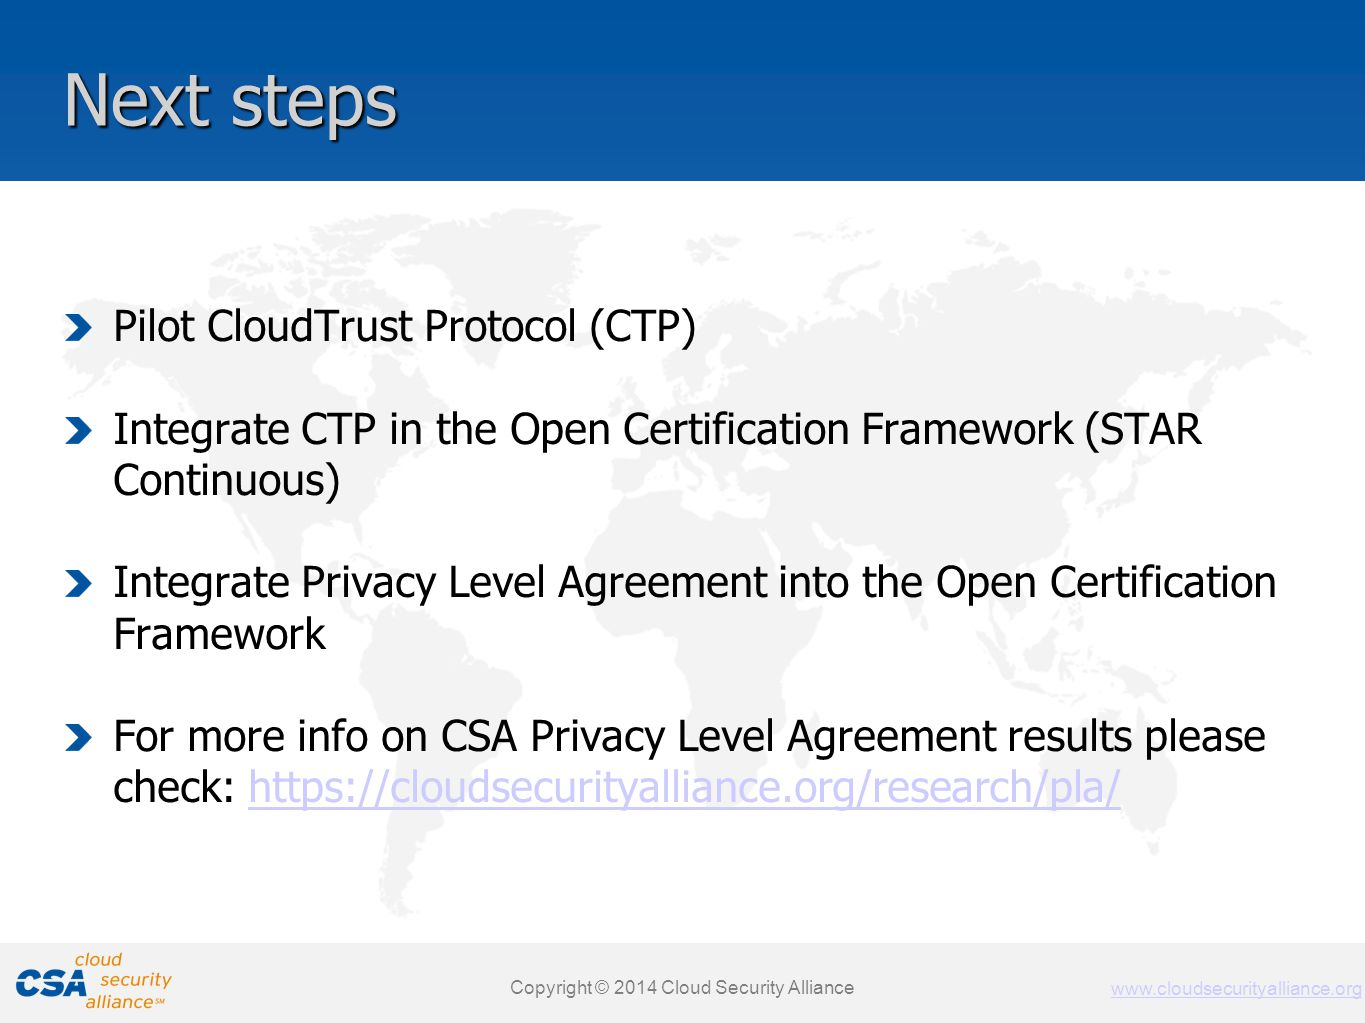 www.cloudsecurityalliance.org Copyright © 2011 Cloud Security Alliance www.cloudsecurityalliance.org Next steps Pilot CloudTrust Protocol (CTP) Integrate CTP in the Open Certification Framework (STAR Continuous) Integrate Privacy Level Agreement into the Open Certification Framework For more info on CSA Privacy Level Agreement results please check: https://cloudsecurityalliance.org/research/pla/https://cloudsecurityalliance.org/research/pla/ Copyright © 2014 Cloud Security Alliance